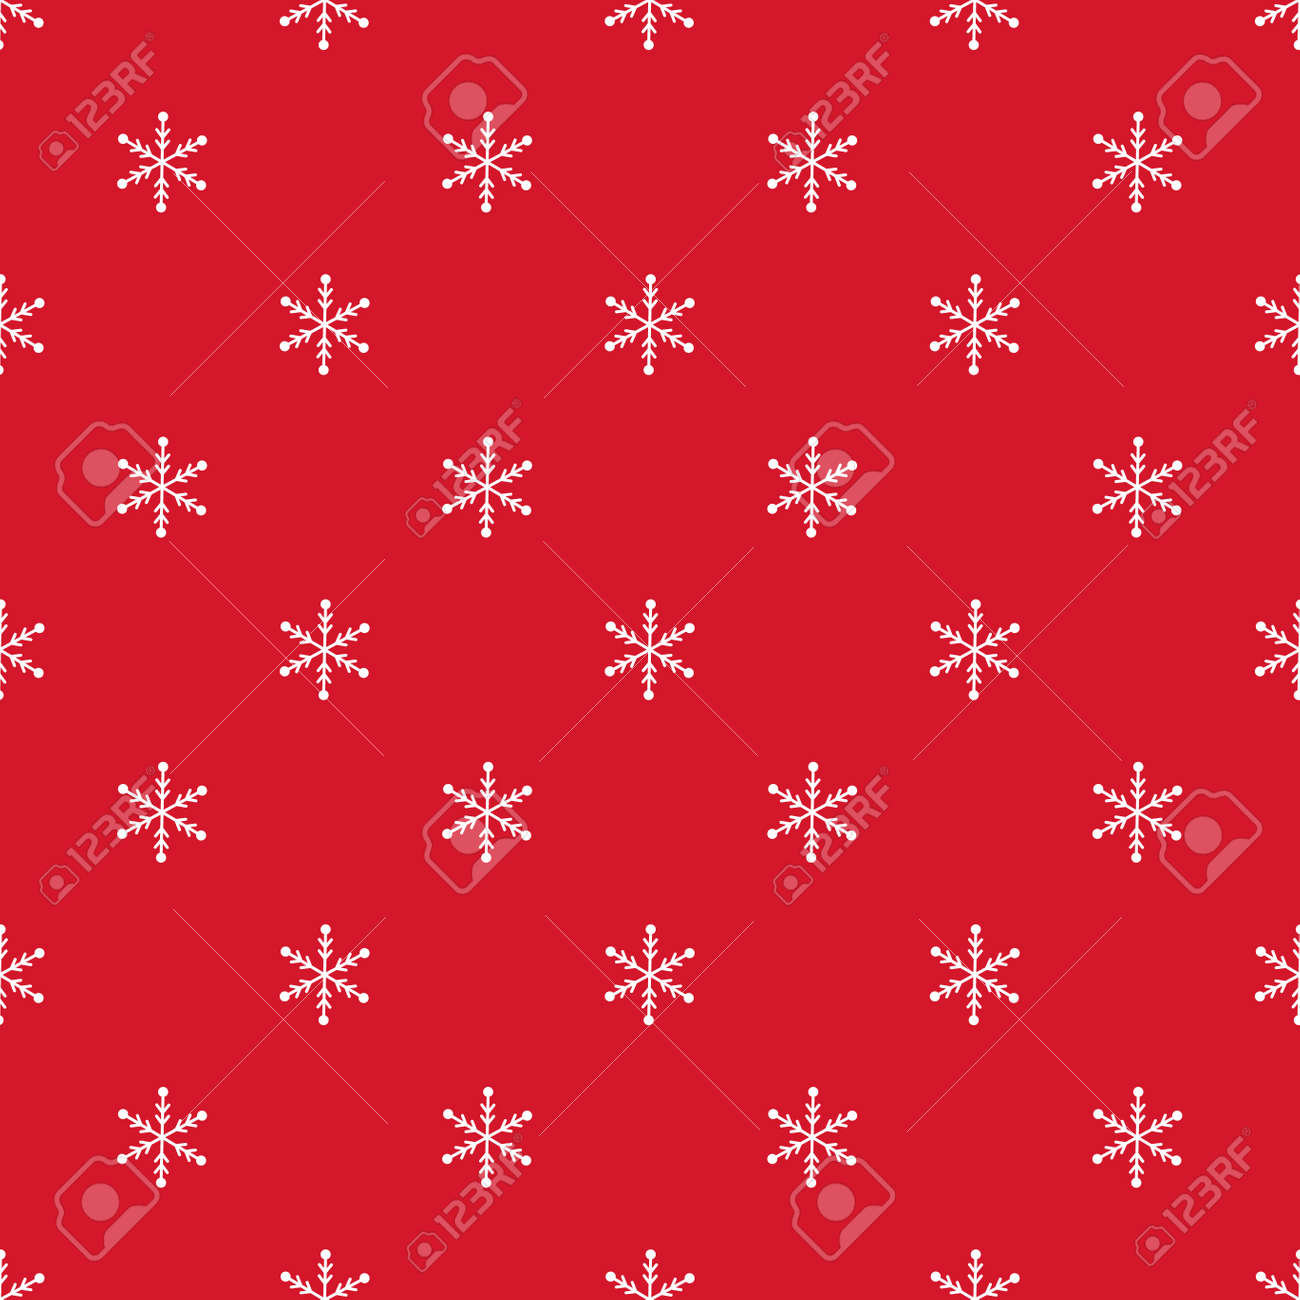 Christmas Snowflake Seamless Pattern Winter Holiday Gift Wrap Royalty Free Cliparts Vectors And Stock Illustration Image 127471719